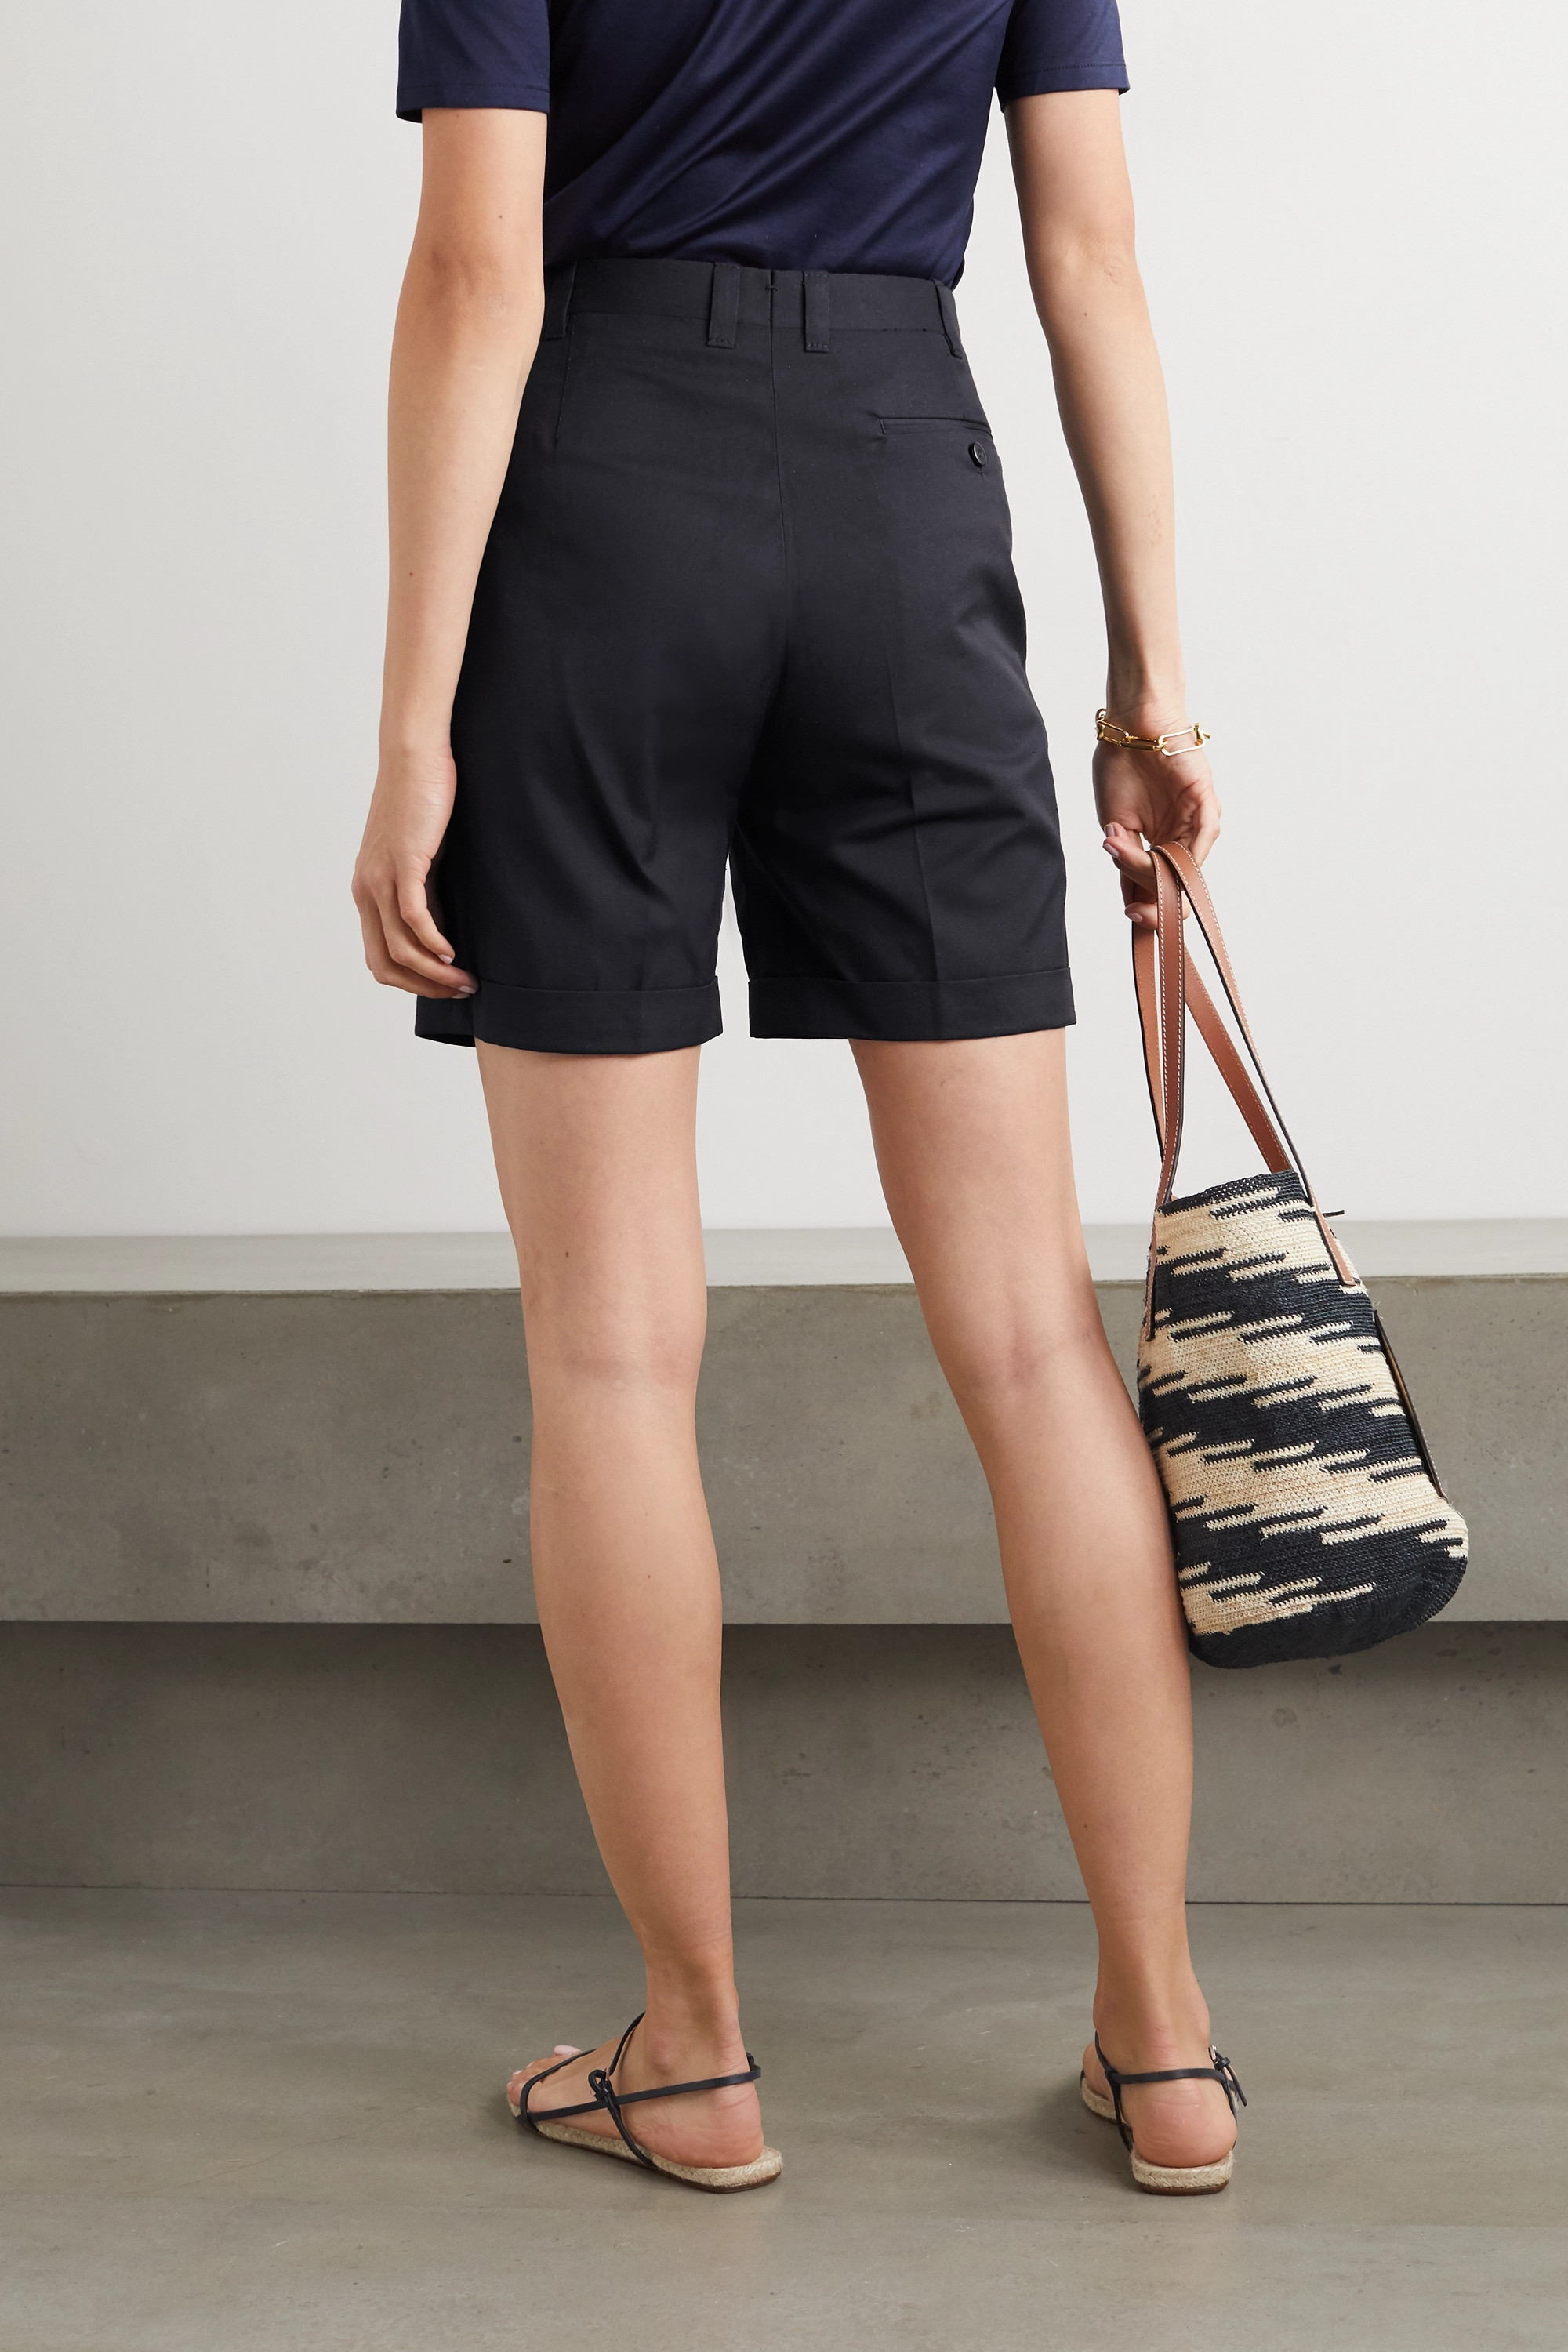 Giuliva Heritage The Husband pleated grain de poudre wool shorts